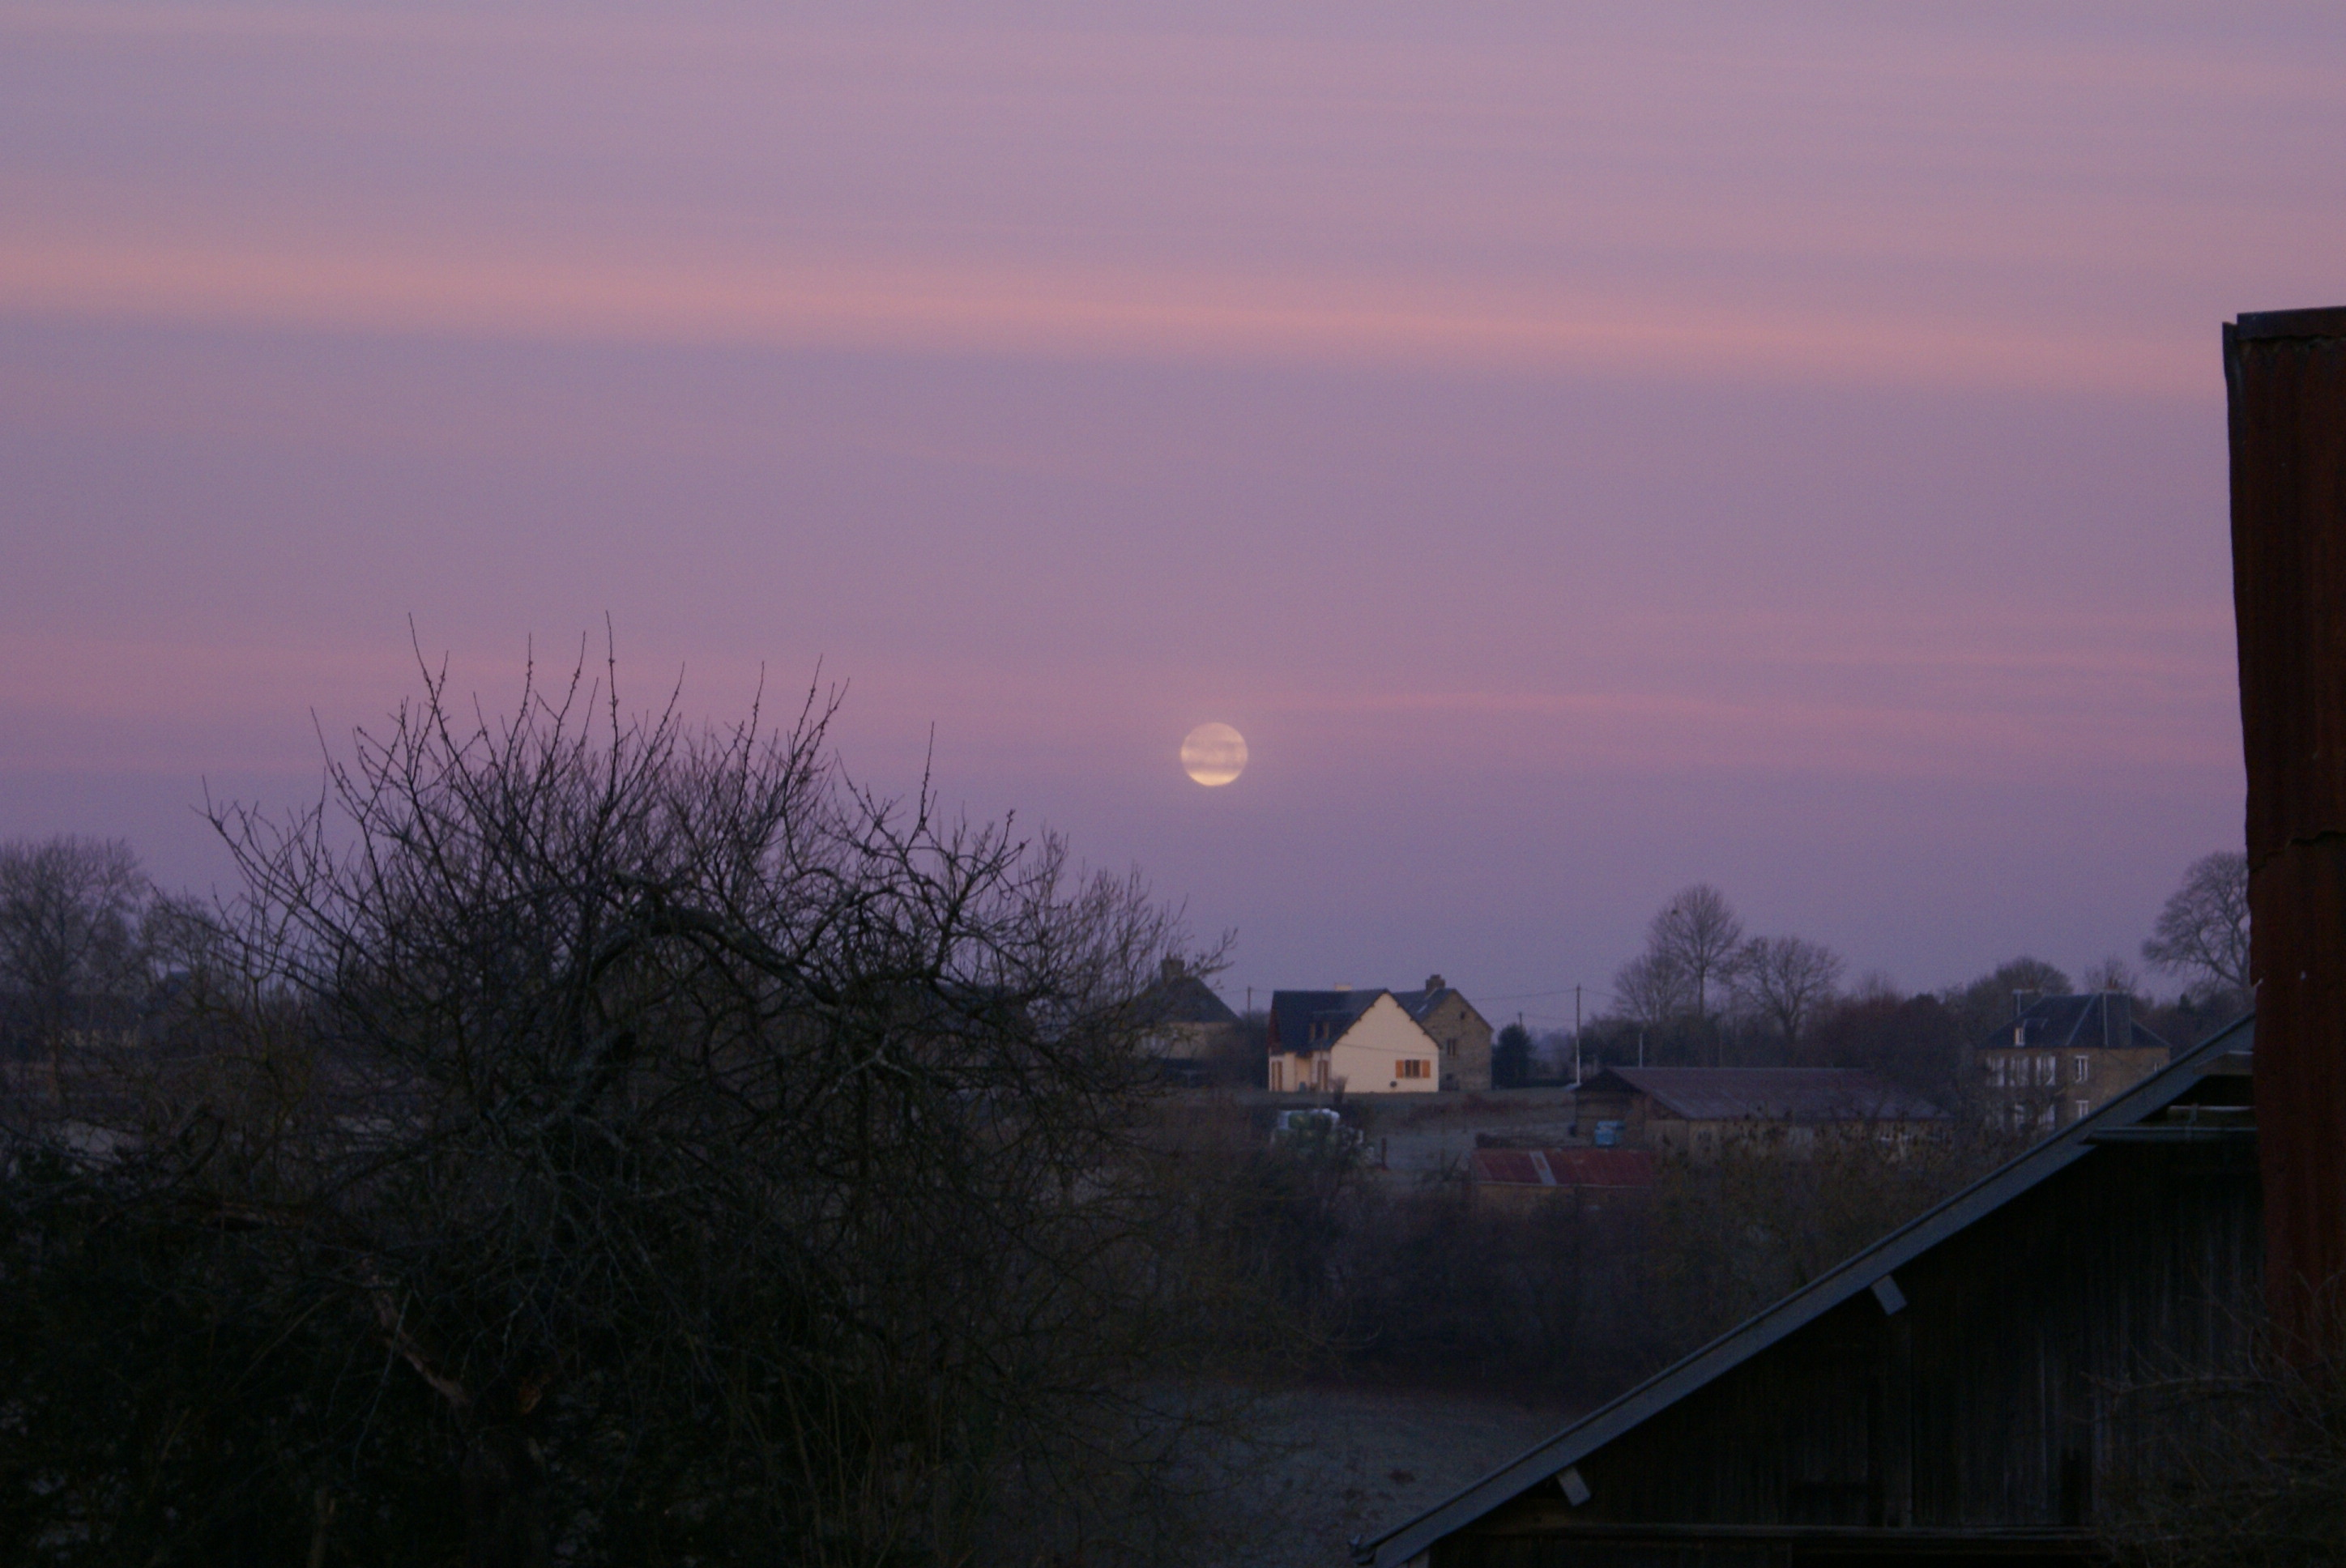 Morning moon over Eco-Gites of Lenault